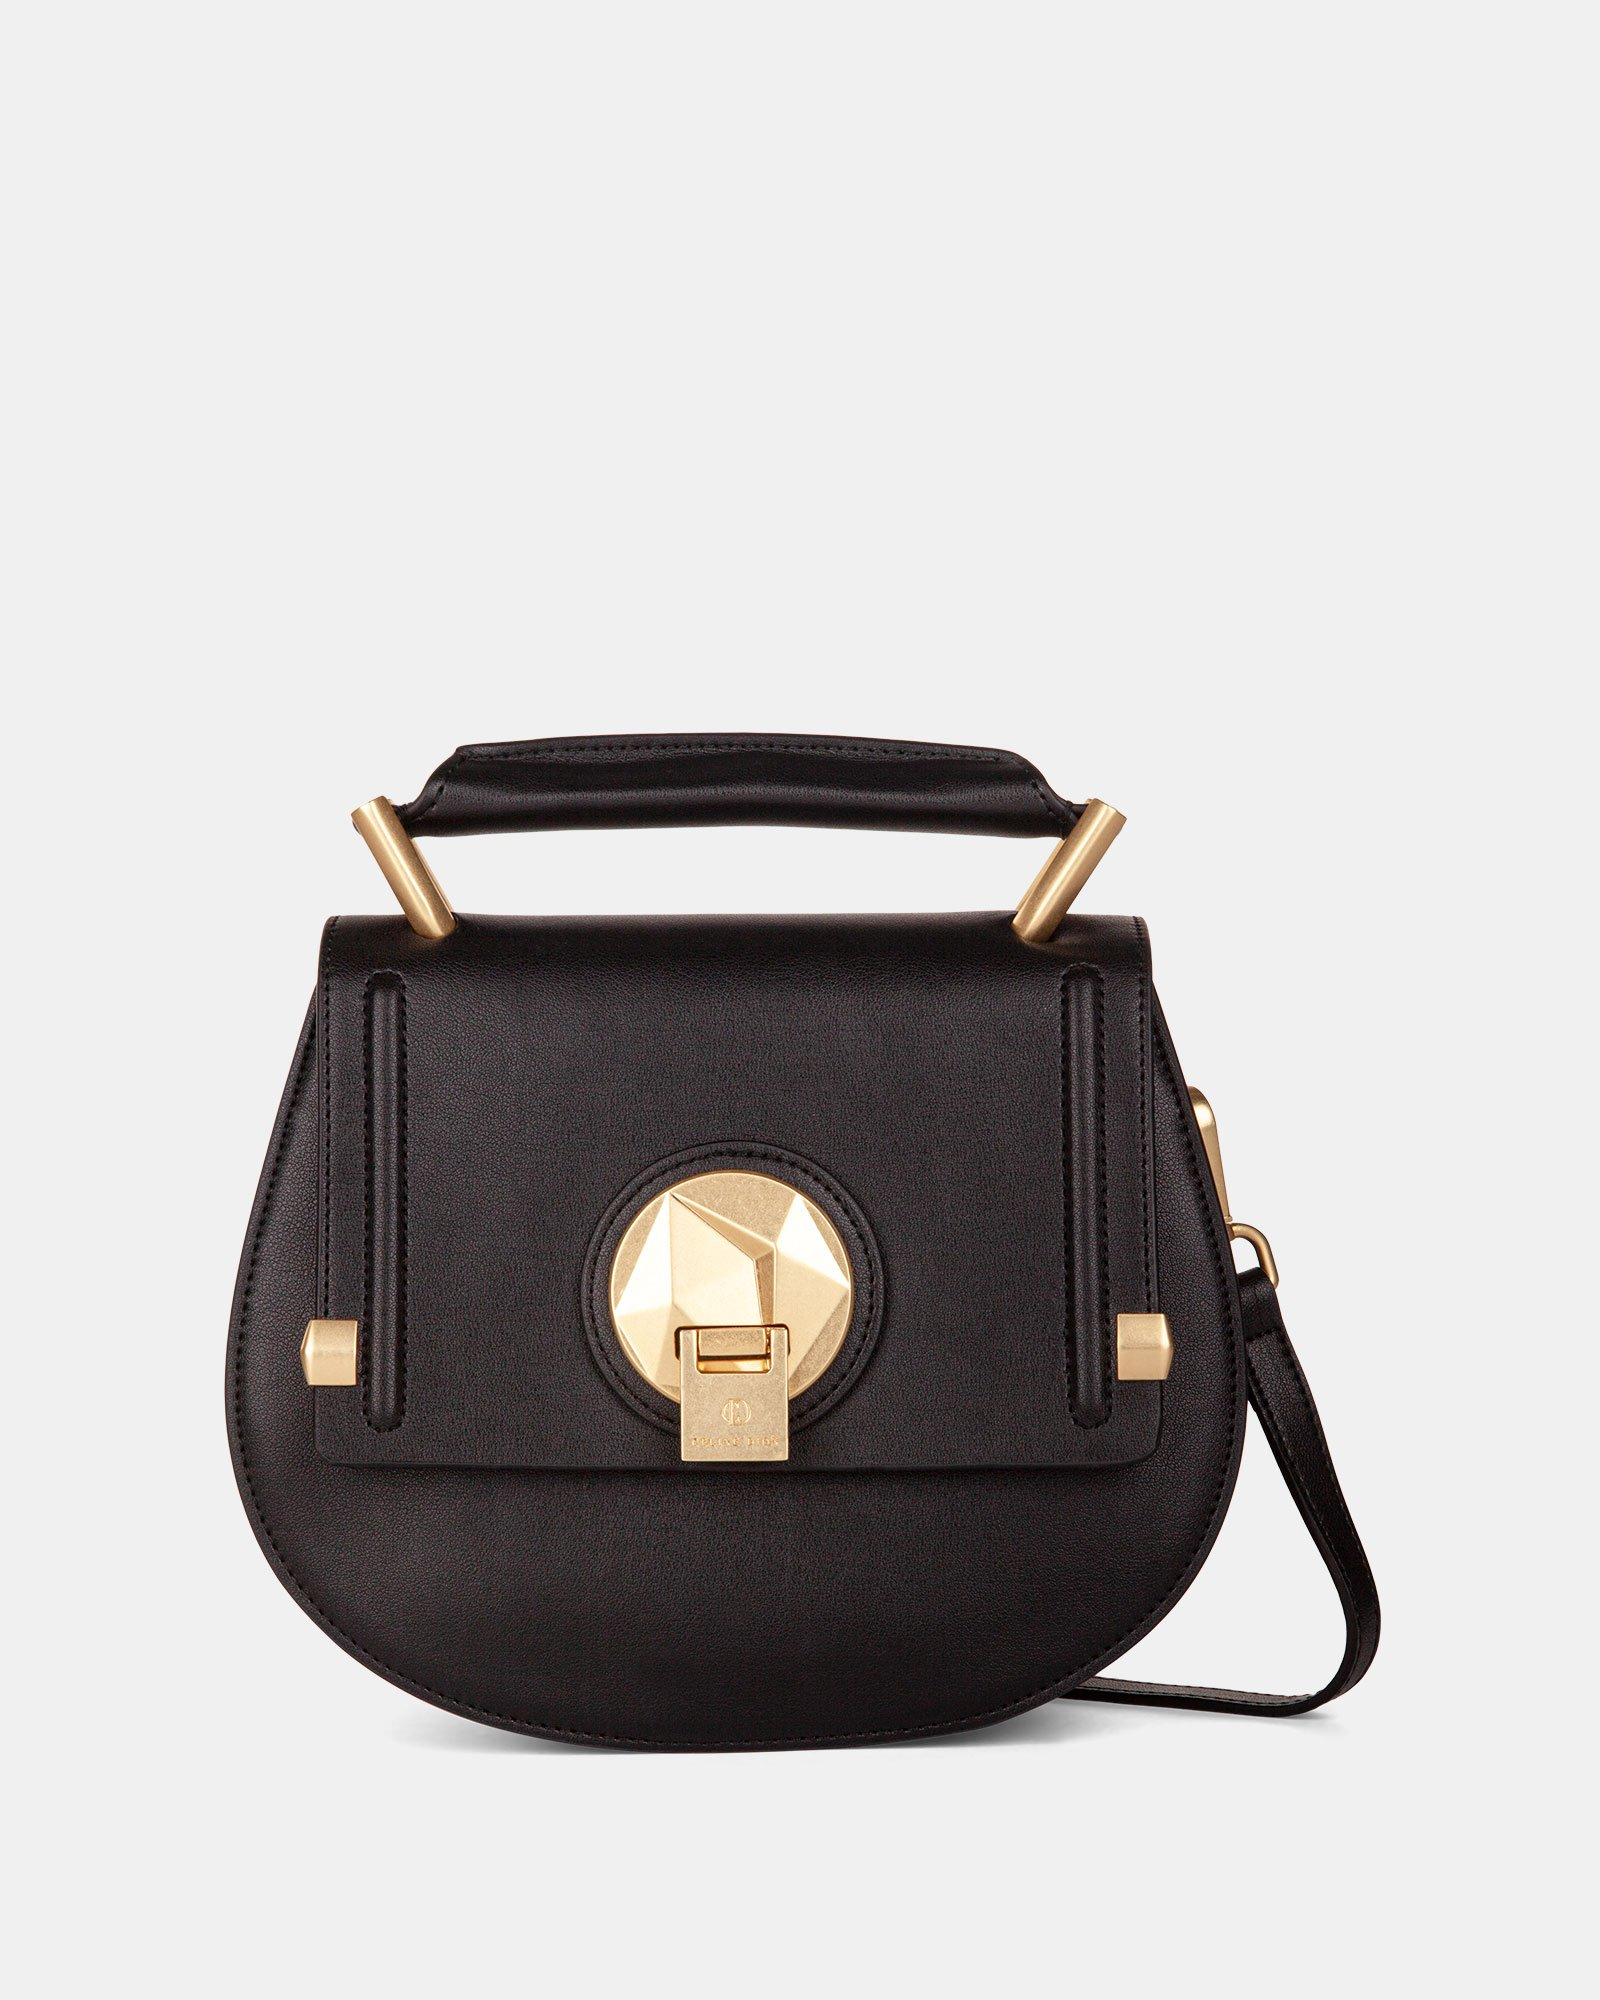 OCTAVE - LEATHER HANDLE BAG with Removable and adjustable strap - BLACK - Céline Dion - Zoom